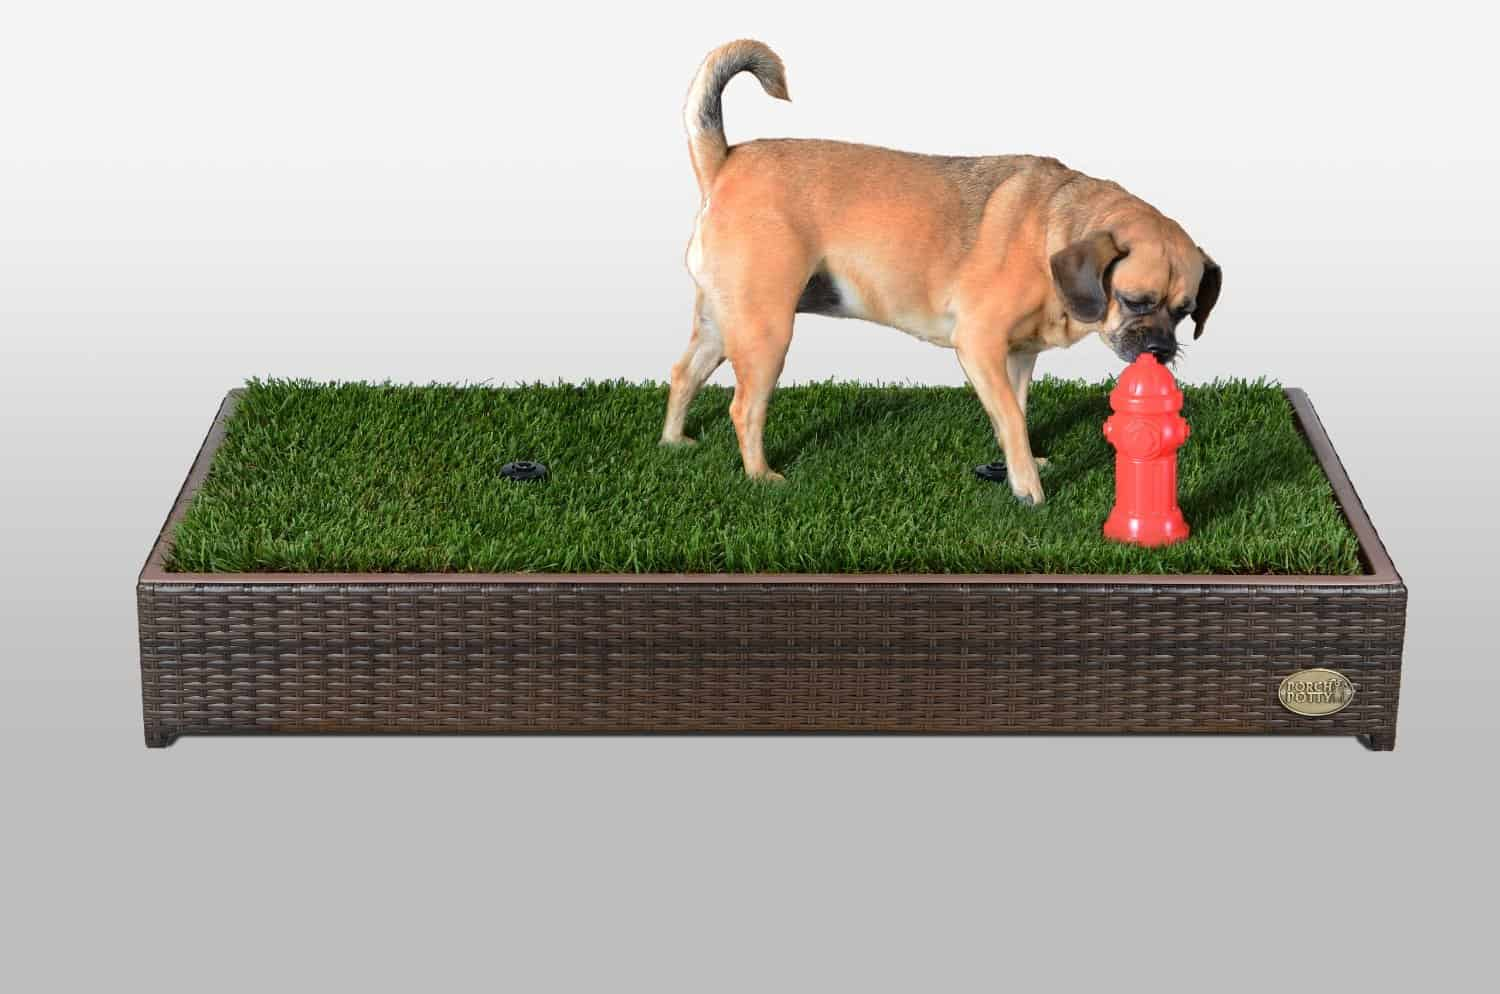 Porch Potty Premium Dog Grassy Litter Box Automatic Sprinklers with Red Fire Hydrant Cute Dog Sniff